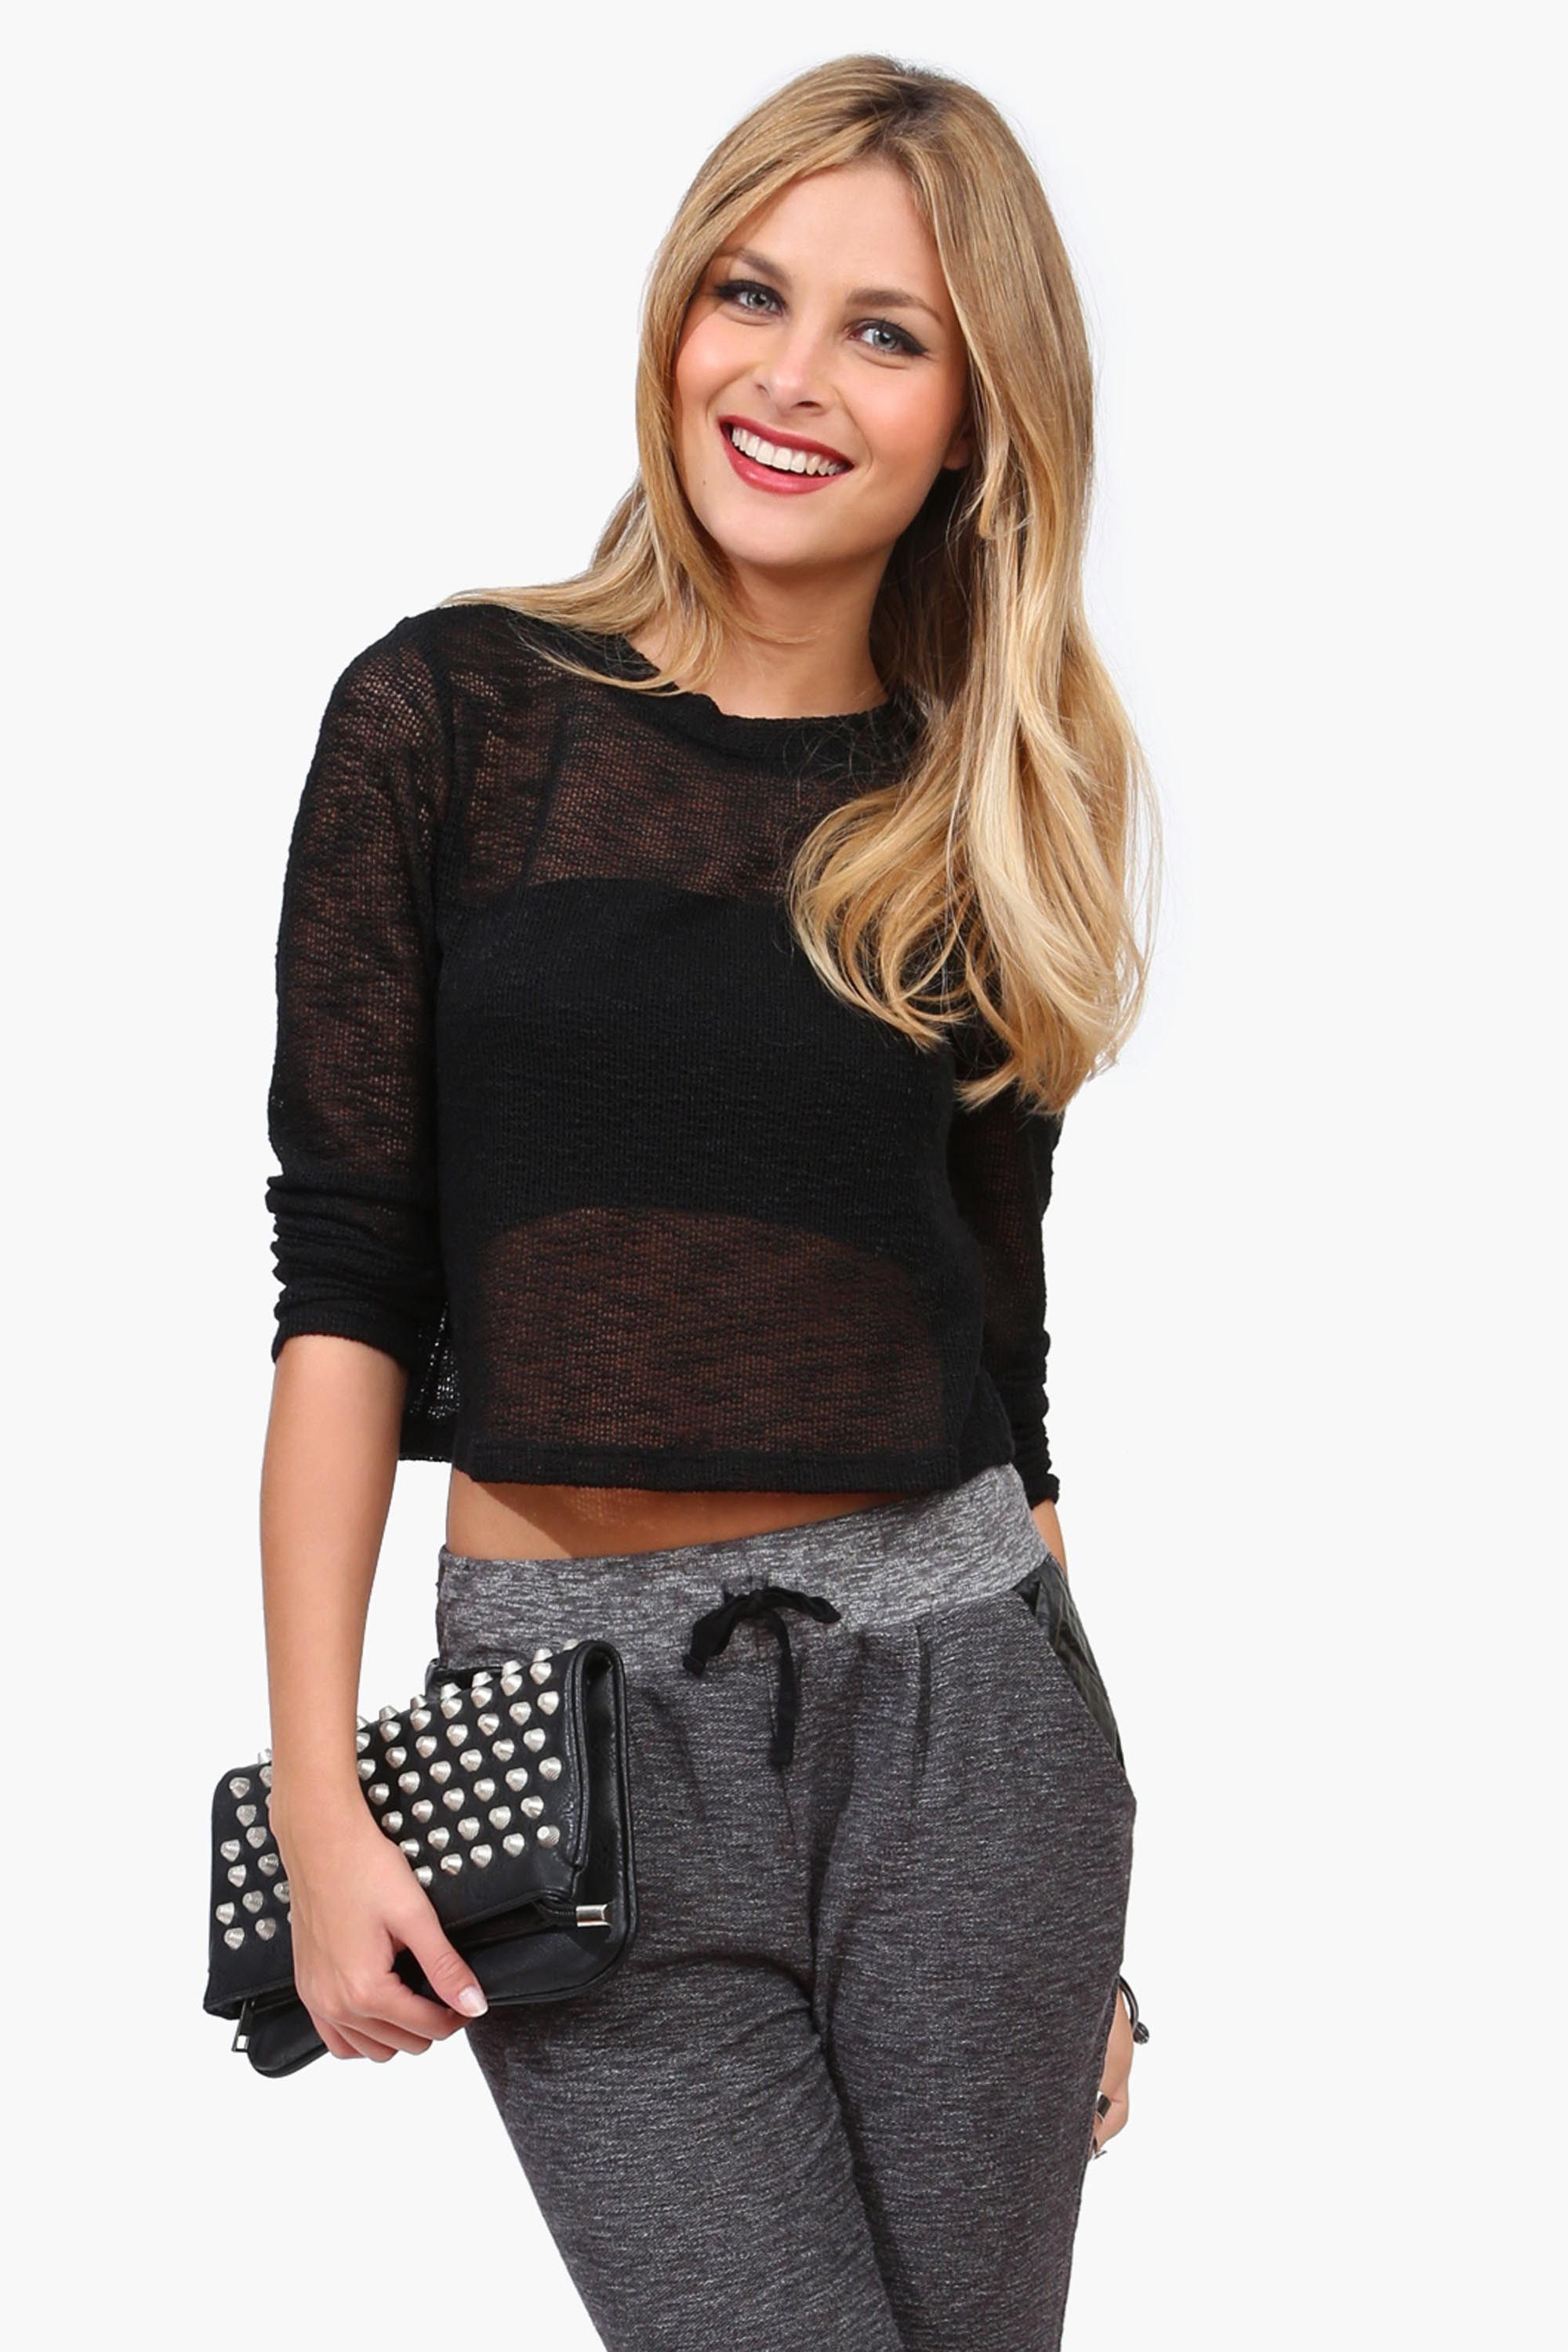 Women clothing stores. Stores like necessary clothing